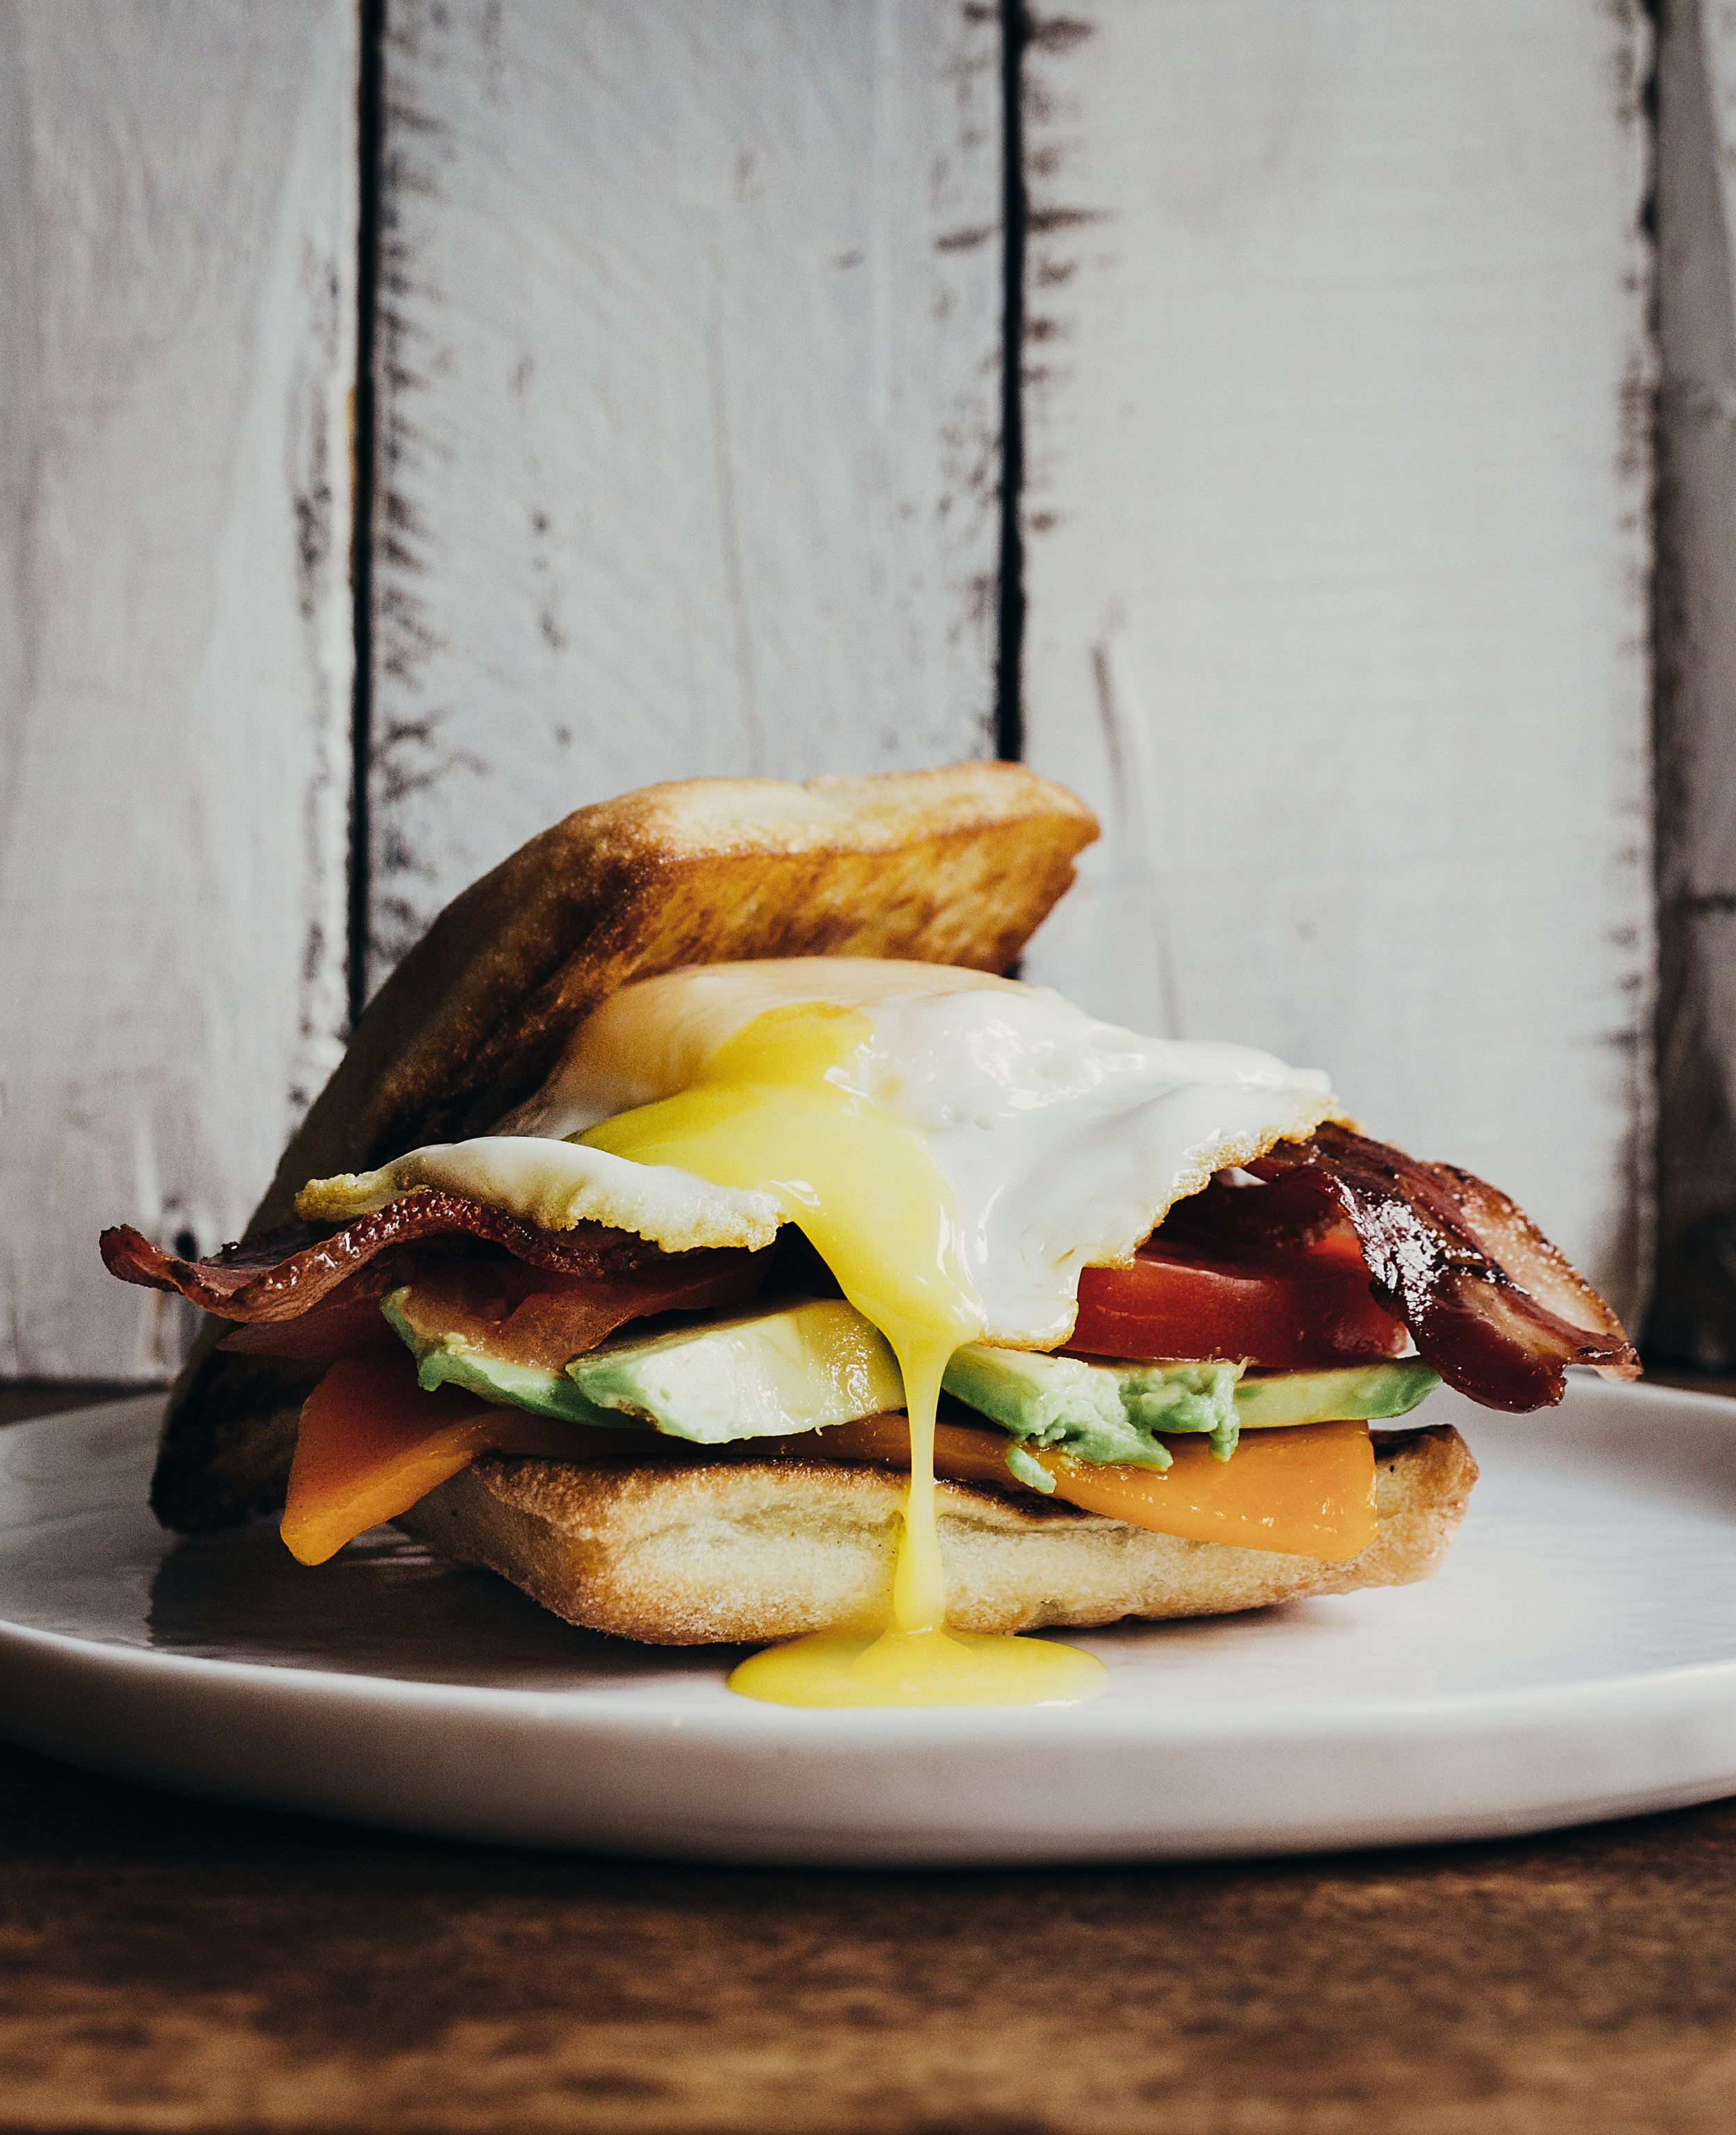 Belly Food Style | Food Stylist | Danielle Acken | Olive the Senses Cookbook | Egg Sandwich 2.jpg